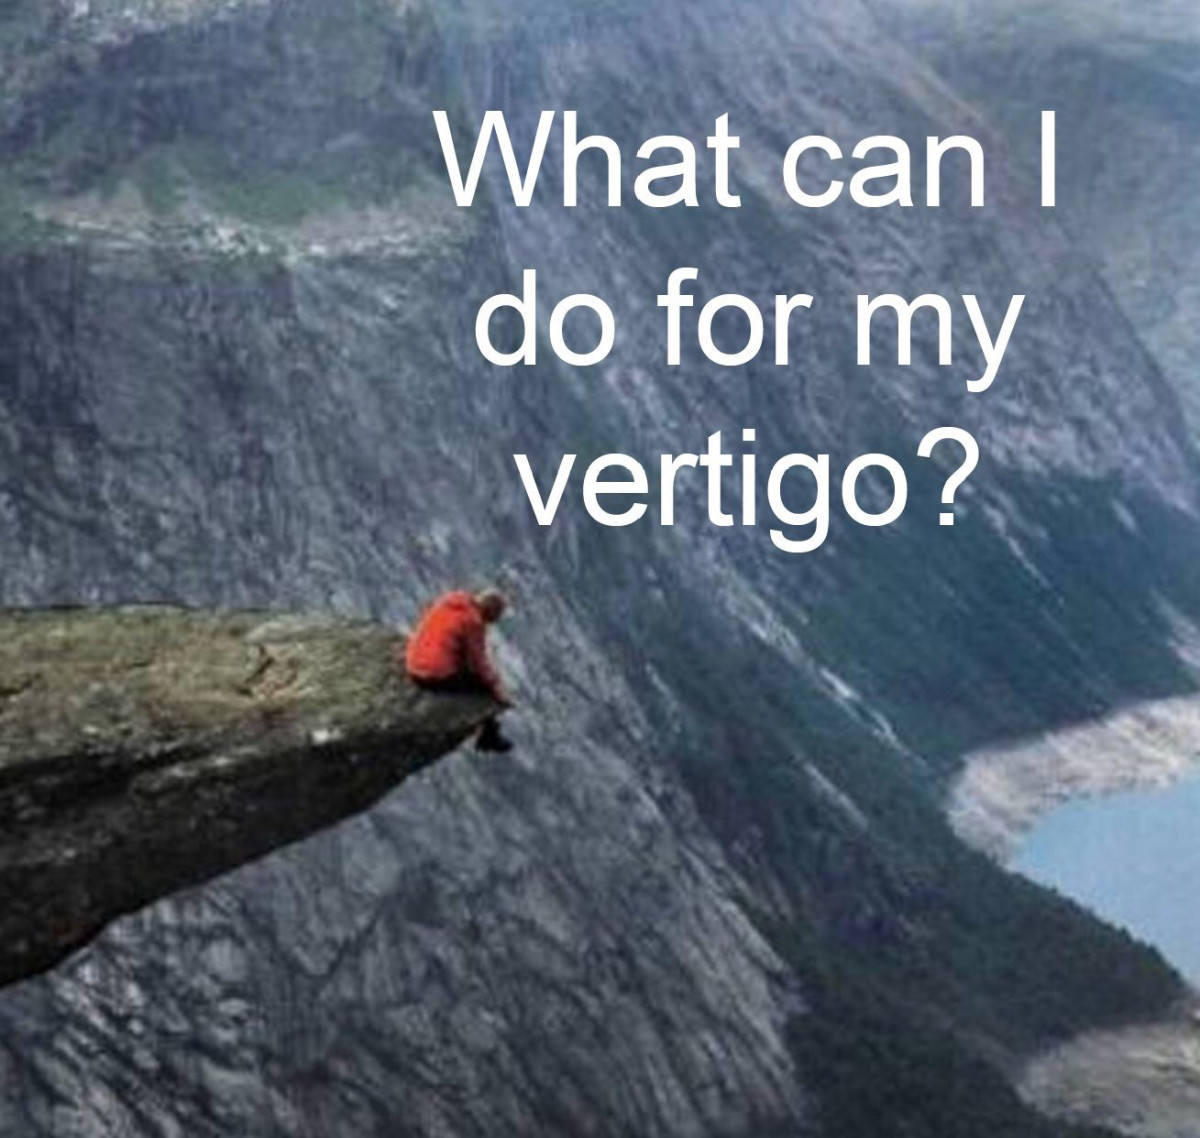 What is vertigo and what can I do for it?